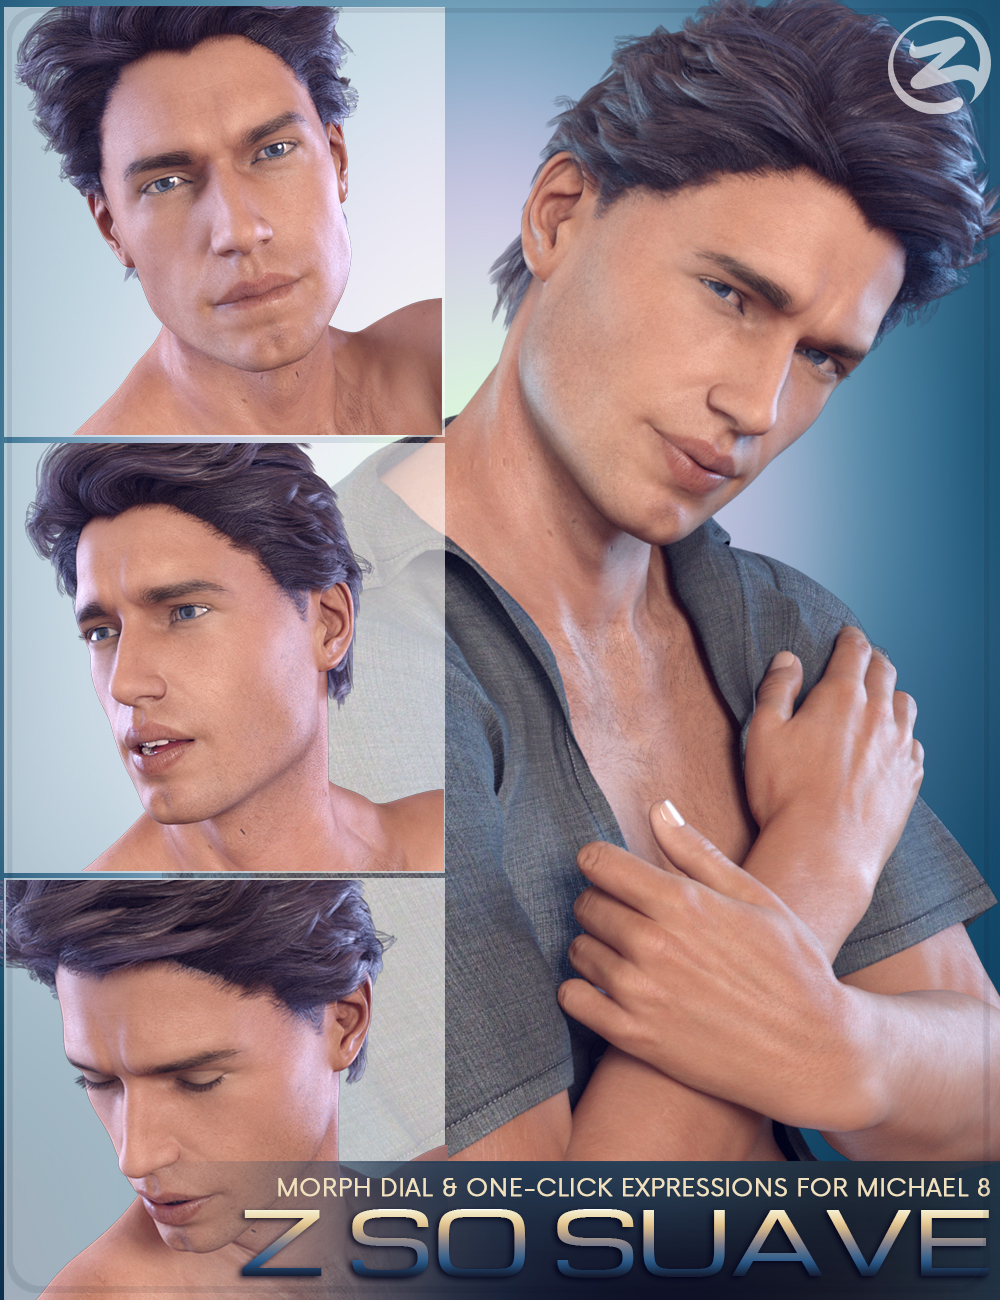 Z So Suave - Dialable and One-Click Expressions for Michael 8 by: Zeddicuss, 3D Models by Daz 3D